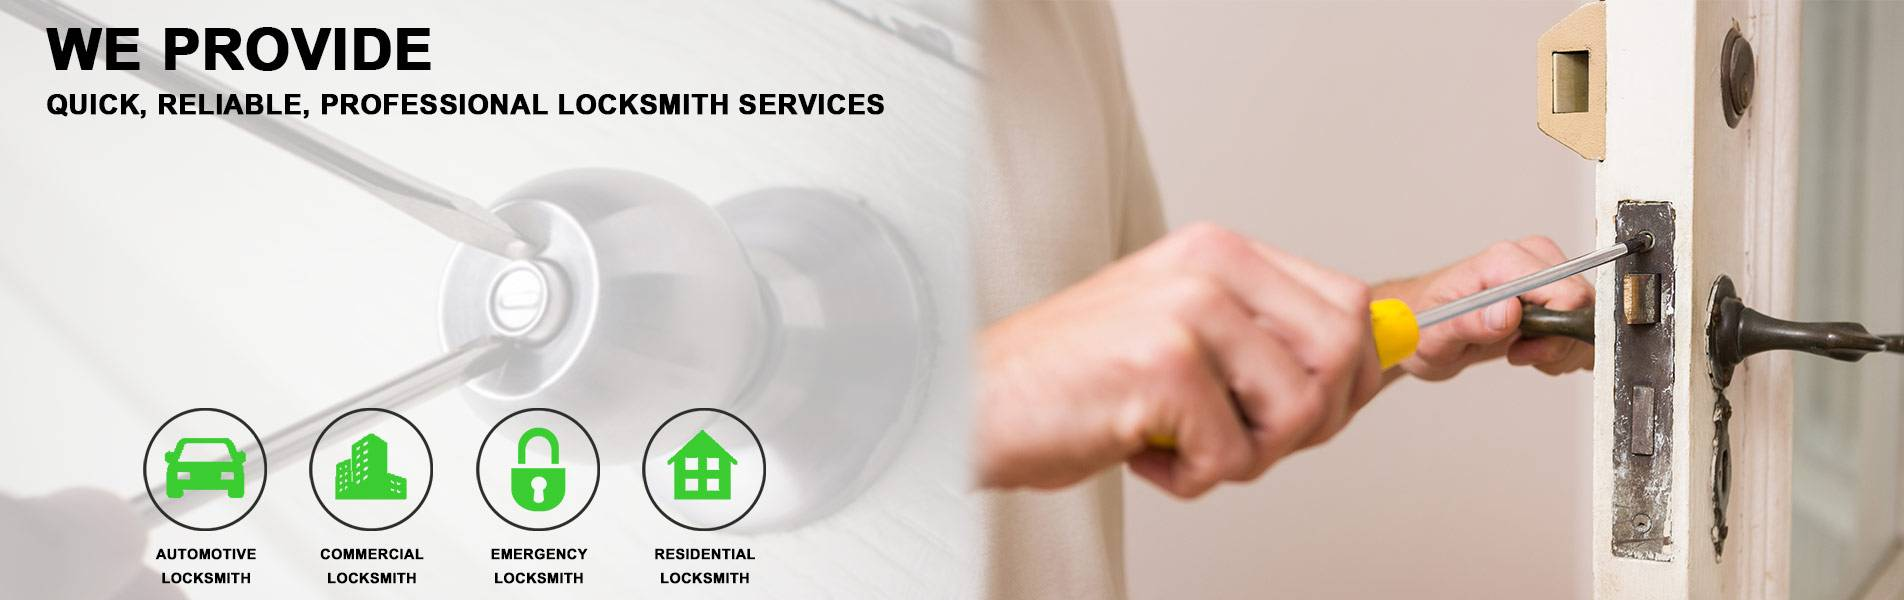 Albuquerque Locksmith Service Albuquerque, NM 505-966-4149